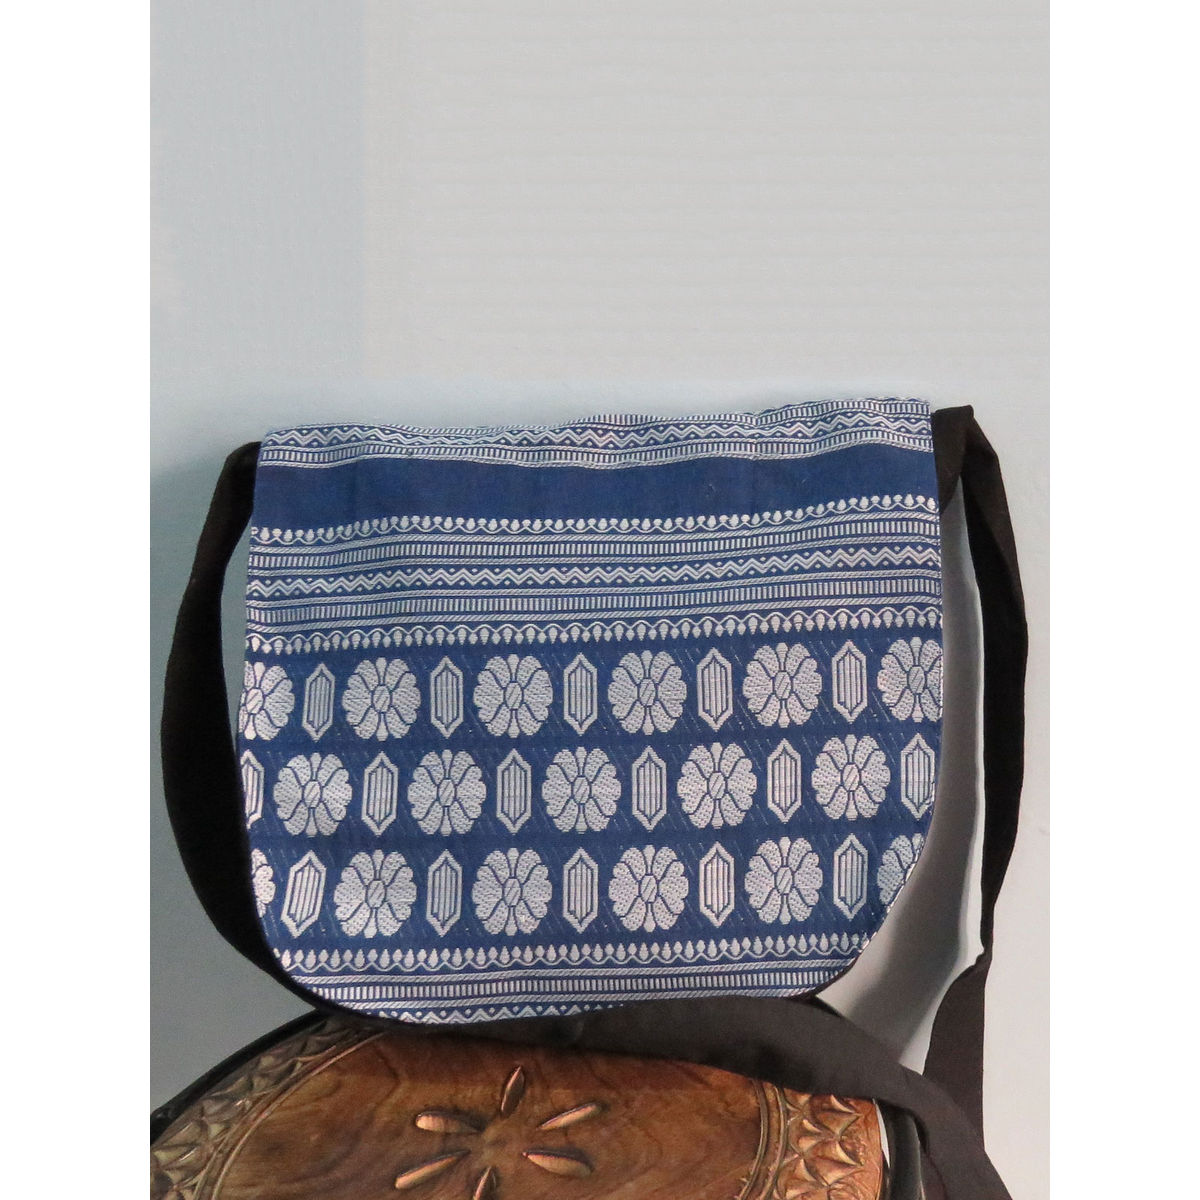 Indigo messenger bag with handwoven design.